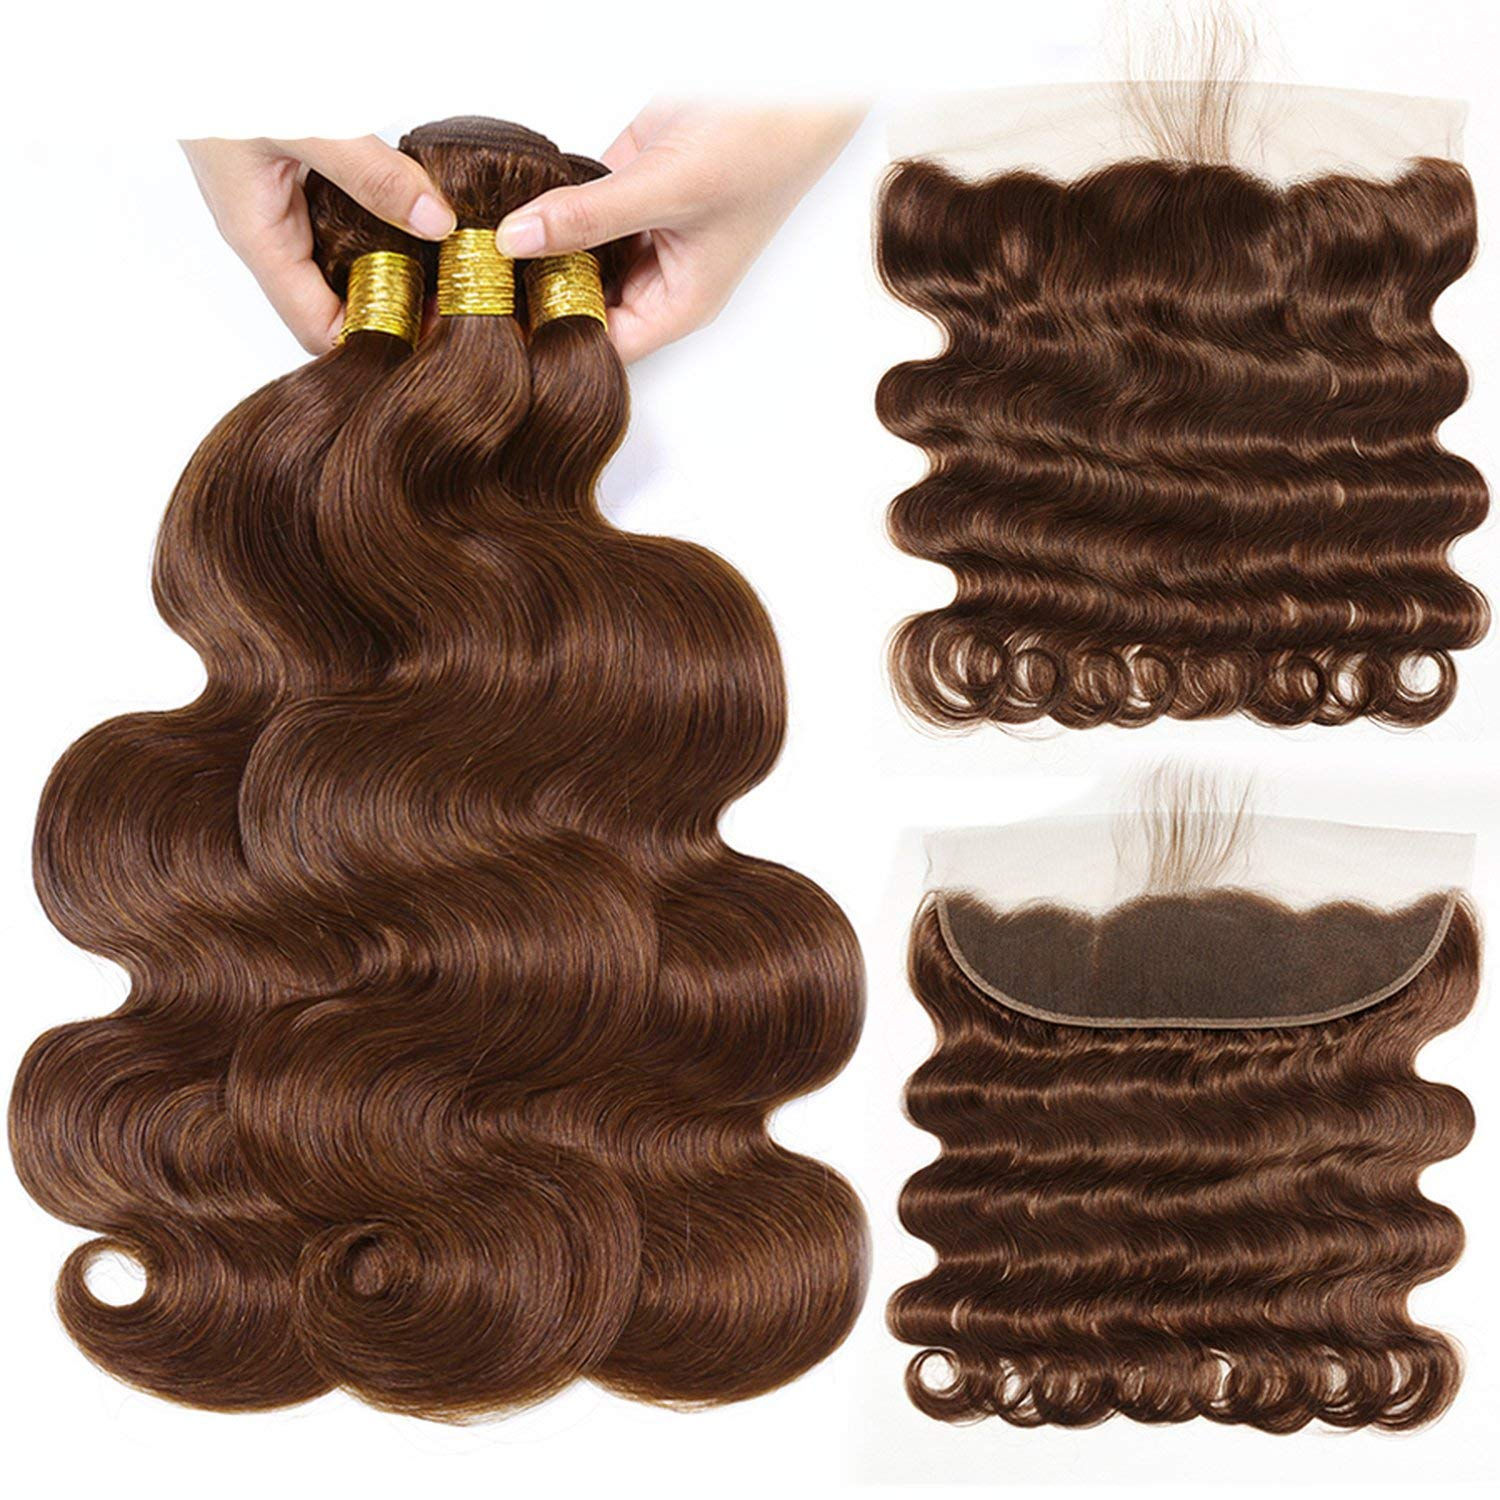 #4 Light Brown Body Wave Hair Bundles With Frontal Brazilian Hair Weave Bundles Human Hair Bundles Romantico NonRemy Hair Extension,20 & 22 & 24 & Closure 18,Light Brown nonremy 81H9ErnWxgL